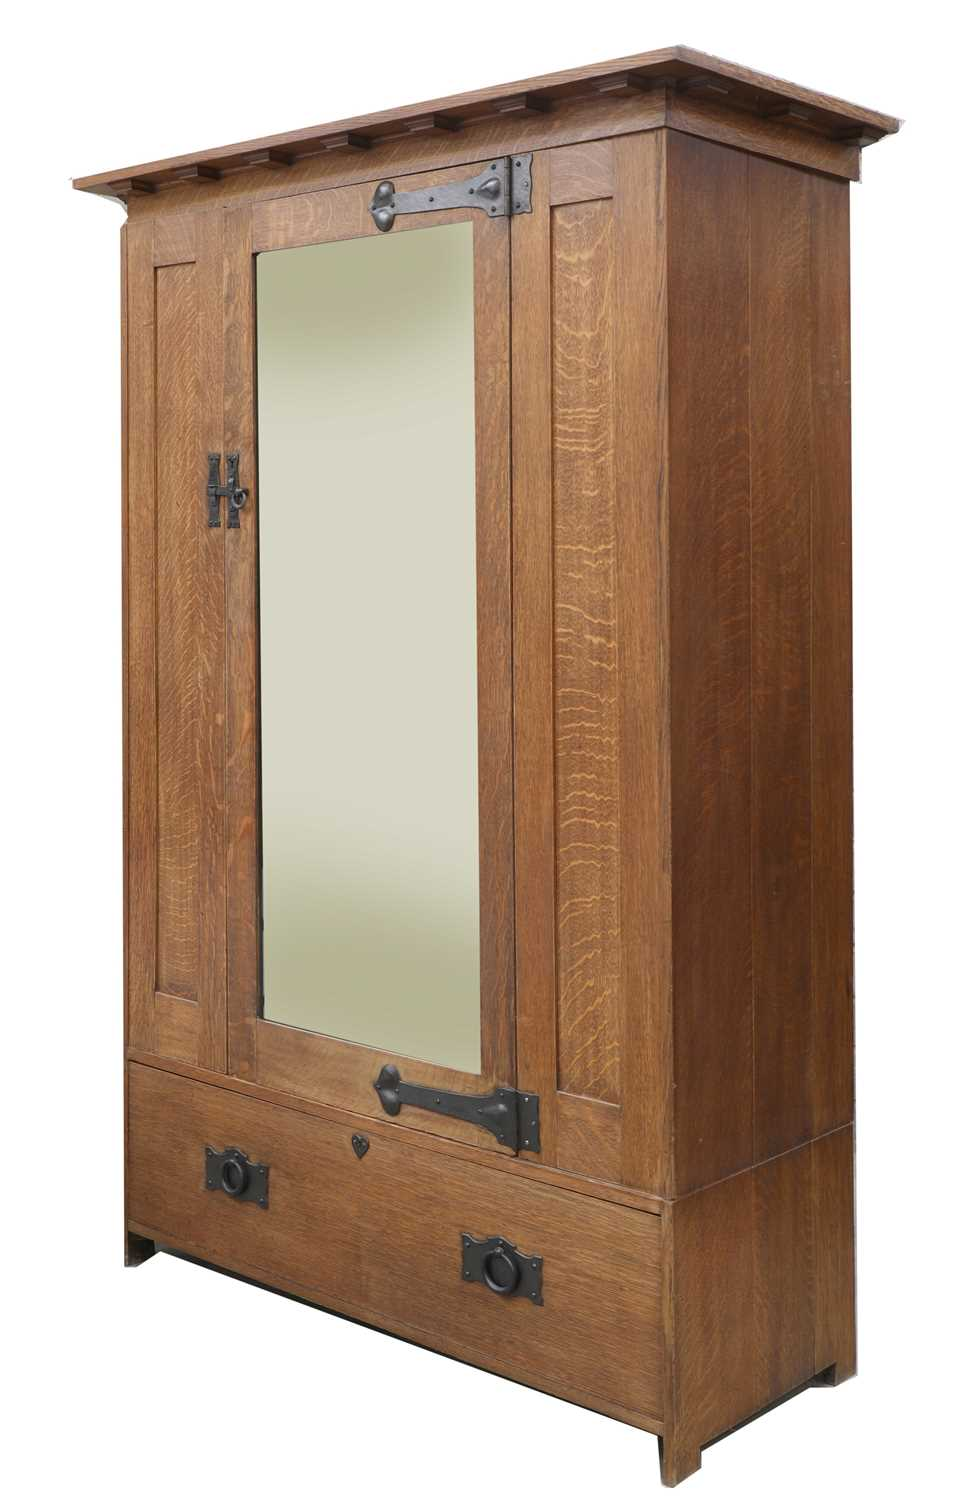 A Heal and Son oak wardrobe, - Image 3 of 4